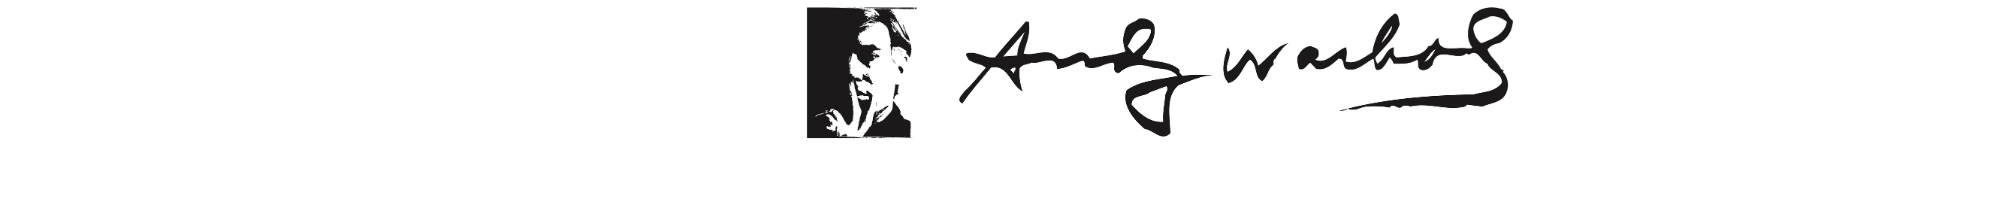 Andy Warhol Foundation for the Visual Arts Logo - two-tone portrait of Warhol and his signature - 4